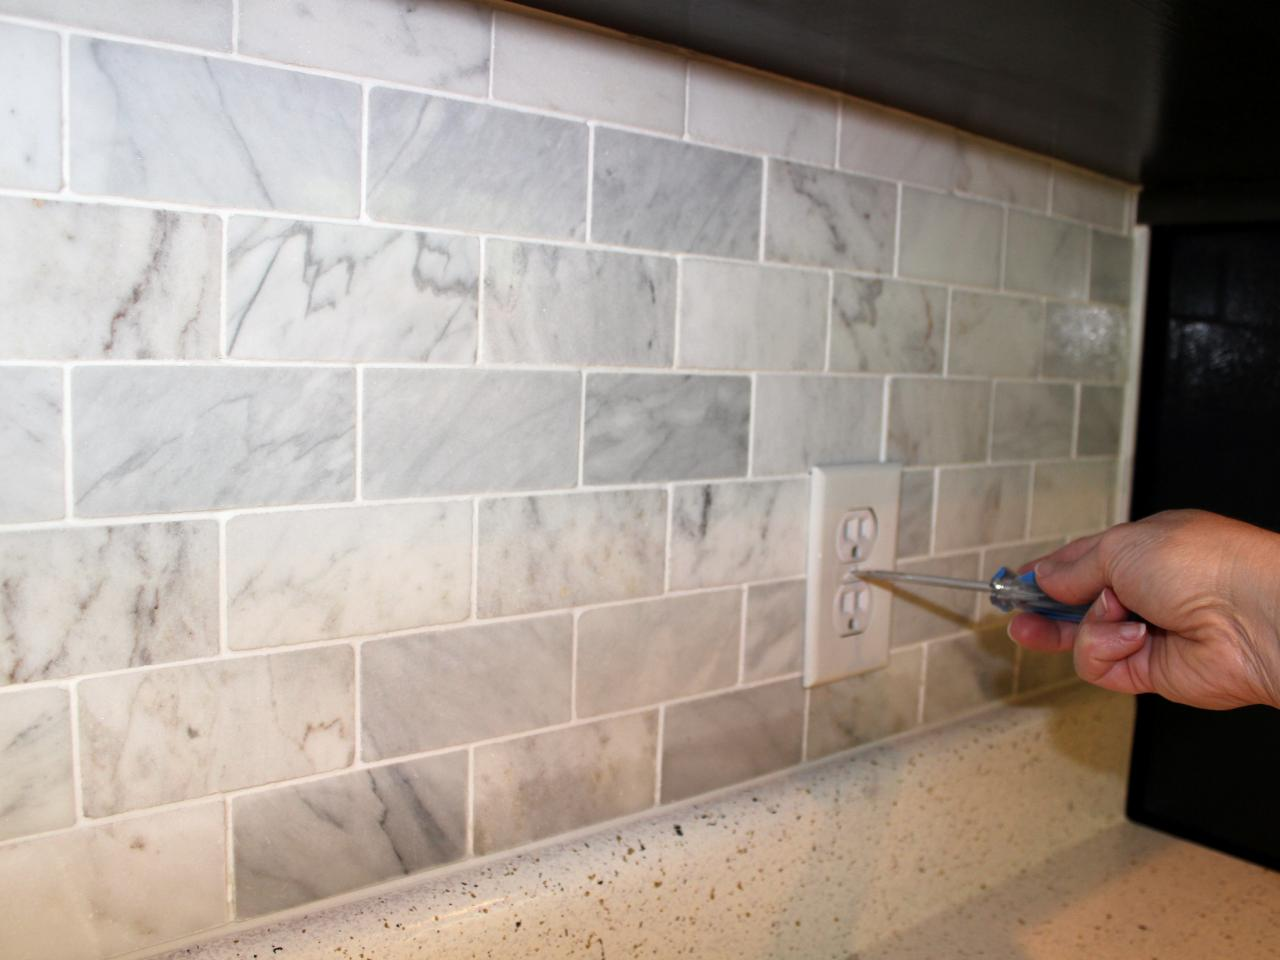 How Much To Install Backsplash subway tile there are many styles colors how do you choose the right Smooth Caulk For Marble Tile Kitchen Backsplash